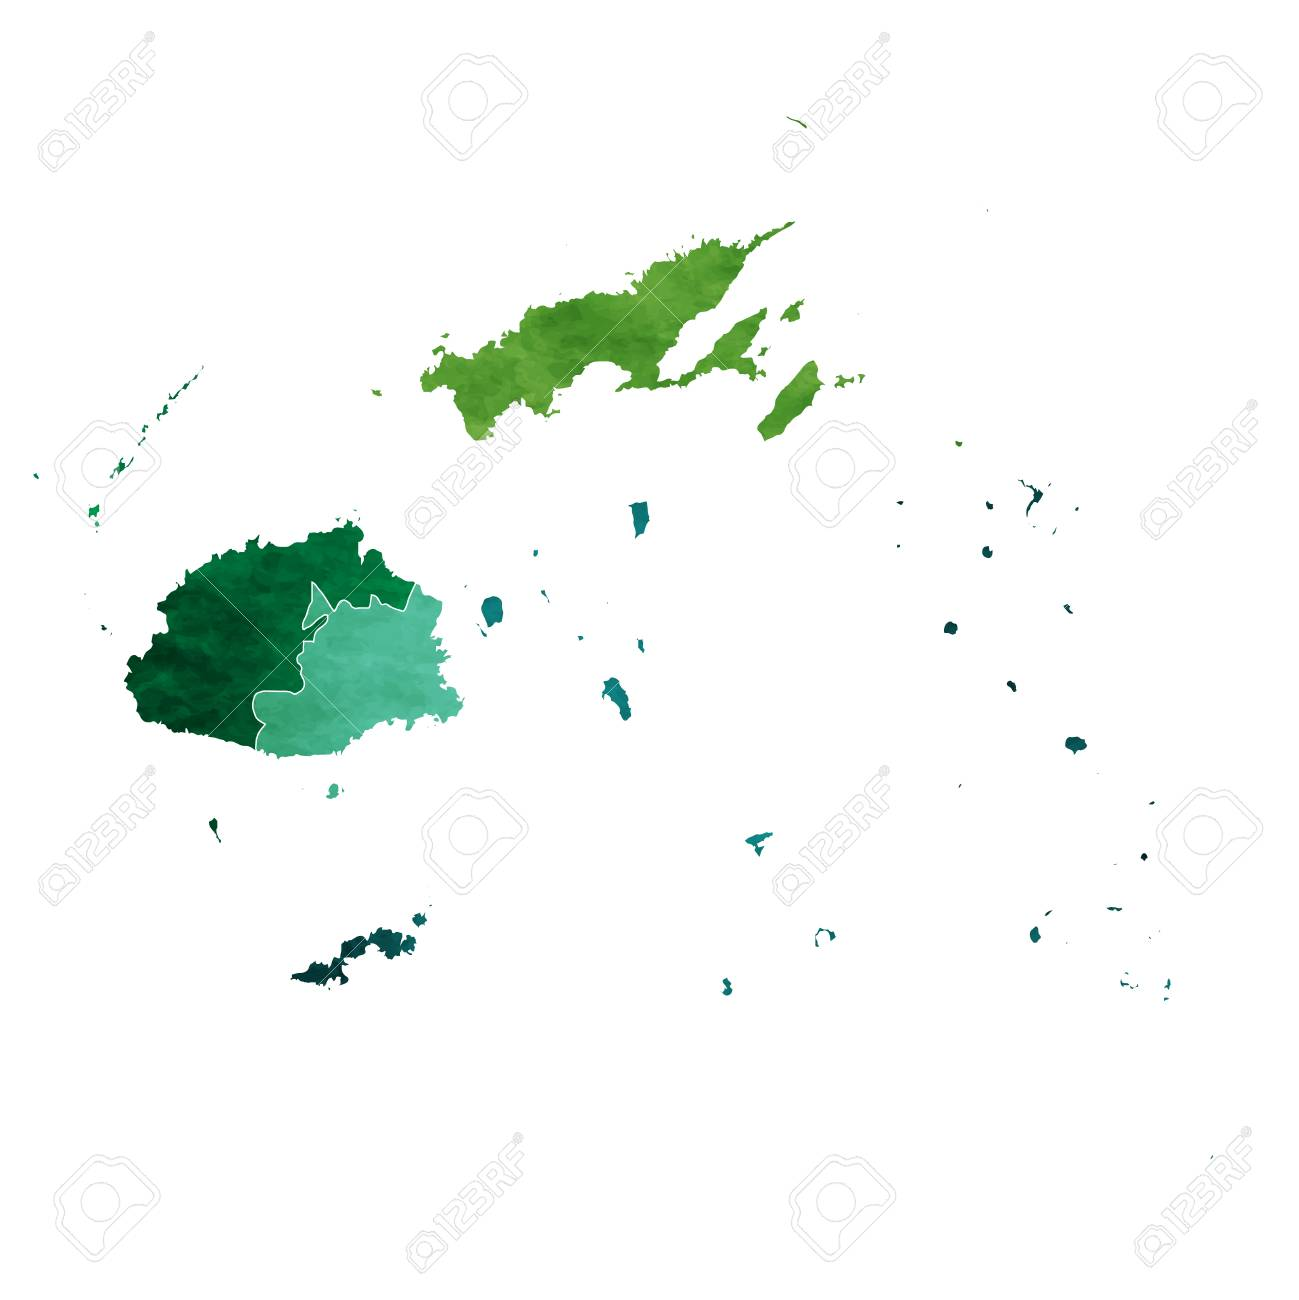 Fiji world map country icon royalty free cliparts vectors and fiji world map country icon stock vector 93838037 gumiabroncs Choice Image